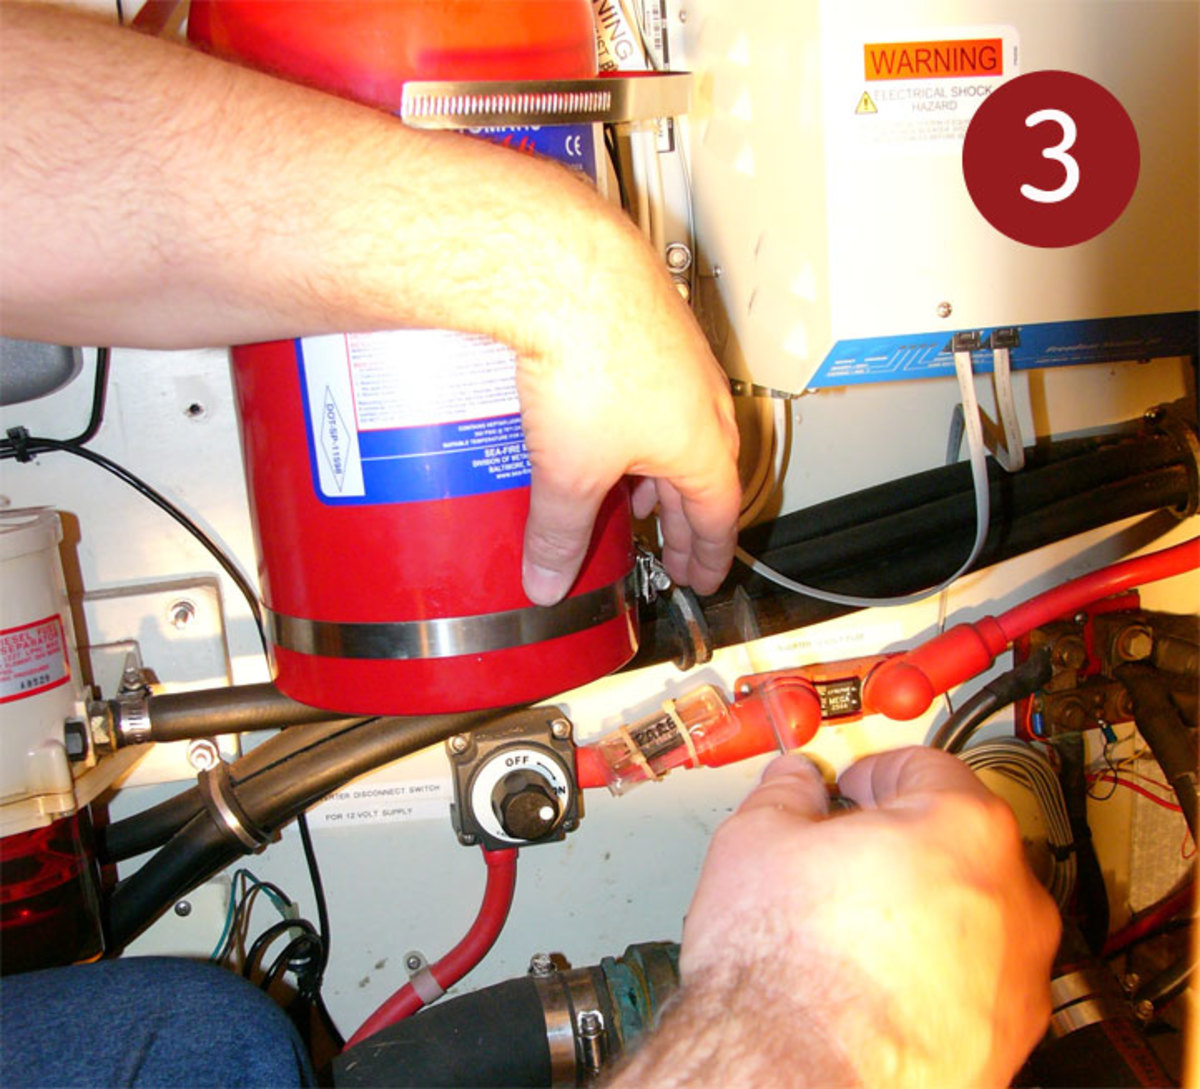 How To Installing A Fire Suppression System Sail Magazine Electrical Wiring Fires You May Not Be So Lucky And Have Reroute Wires Or Hoses If They Are In The Way